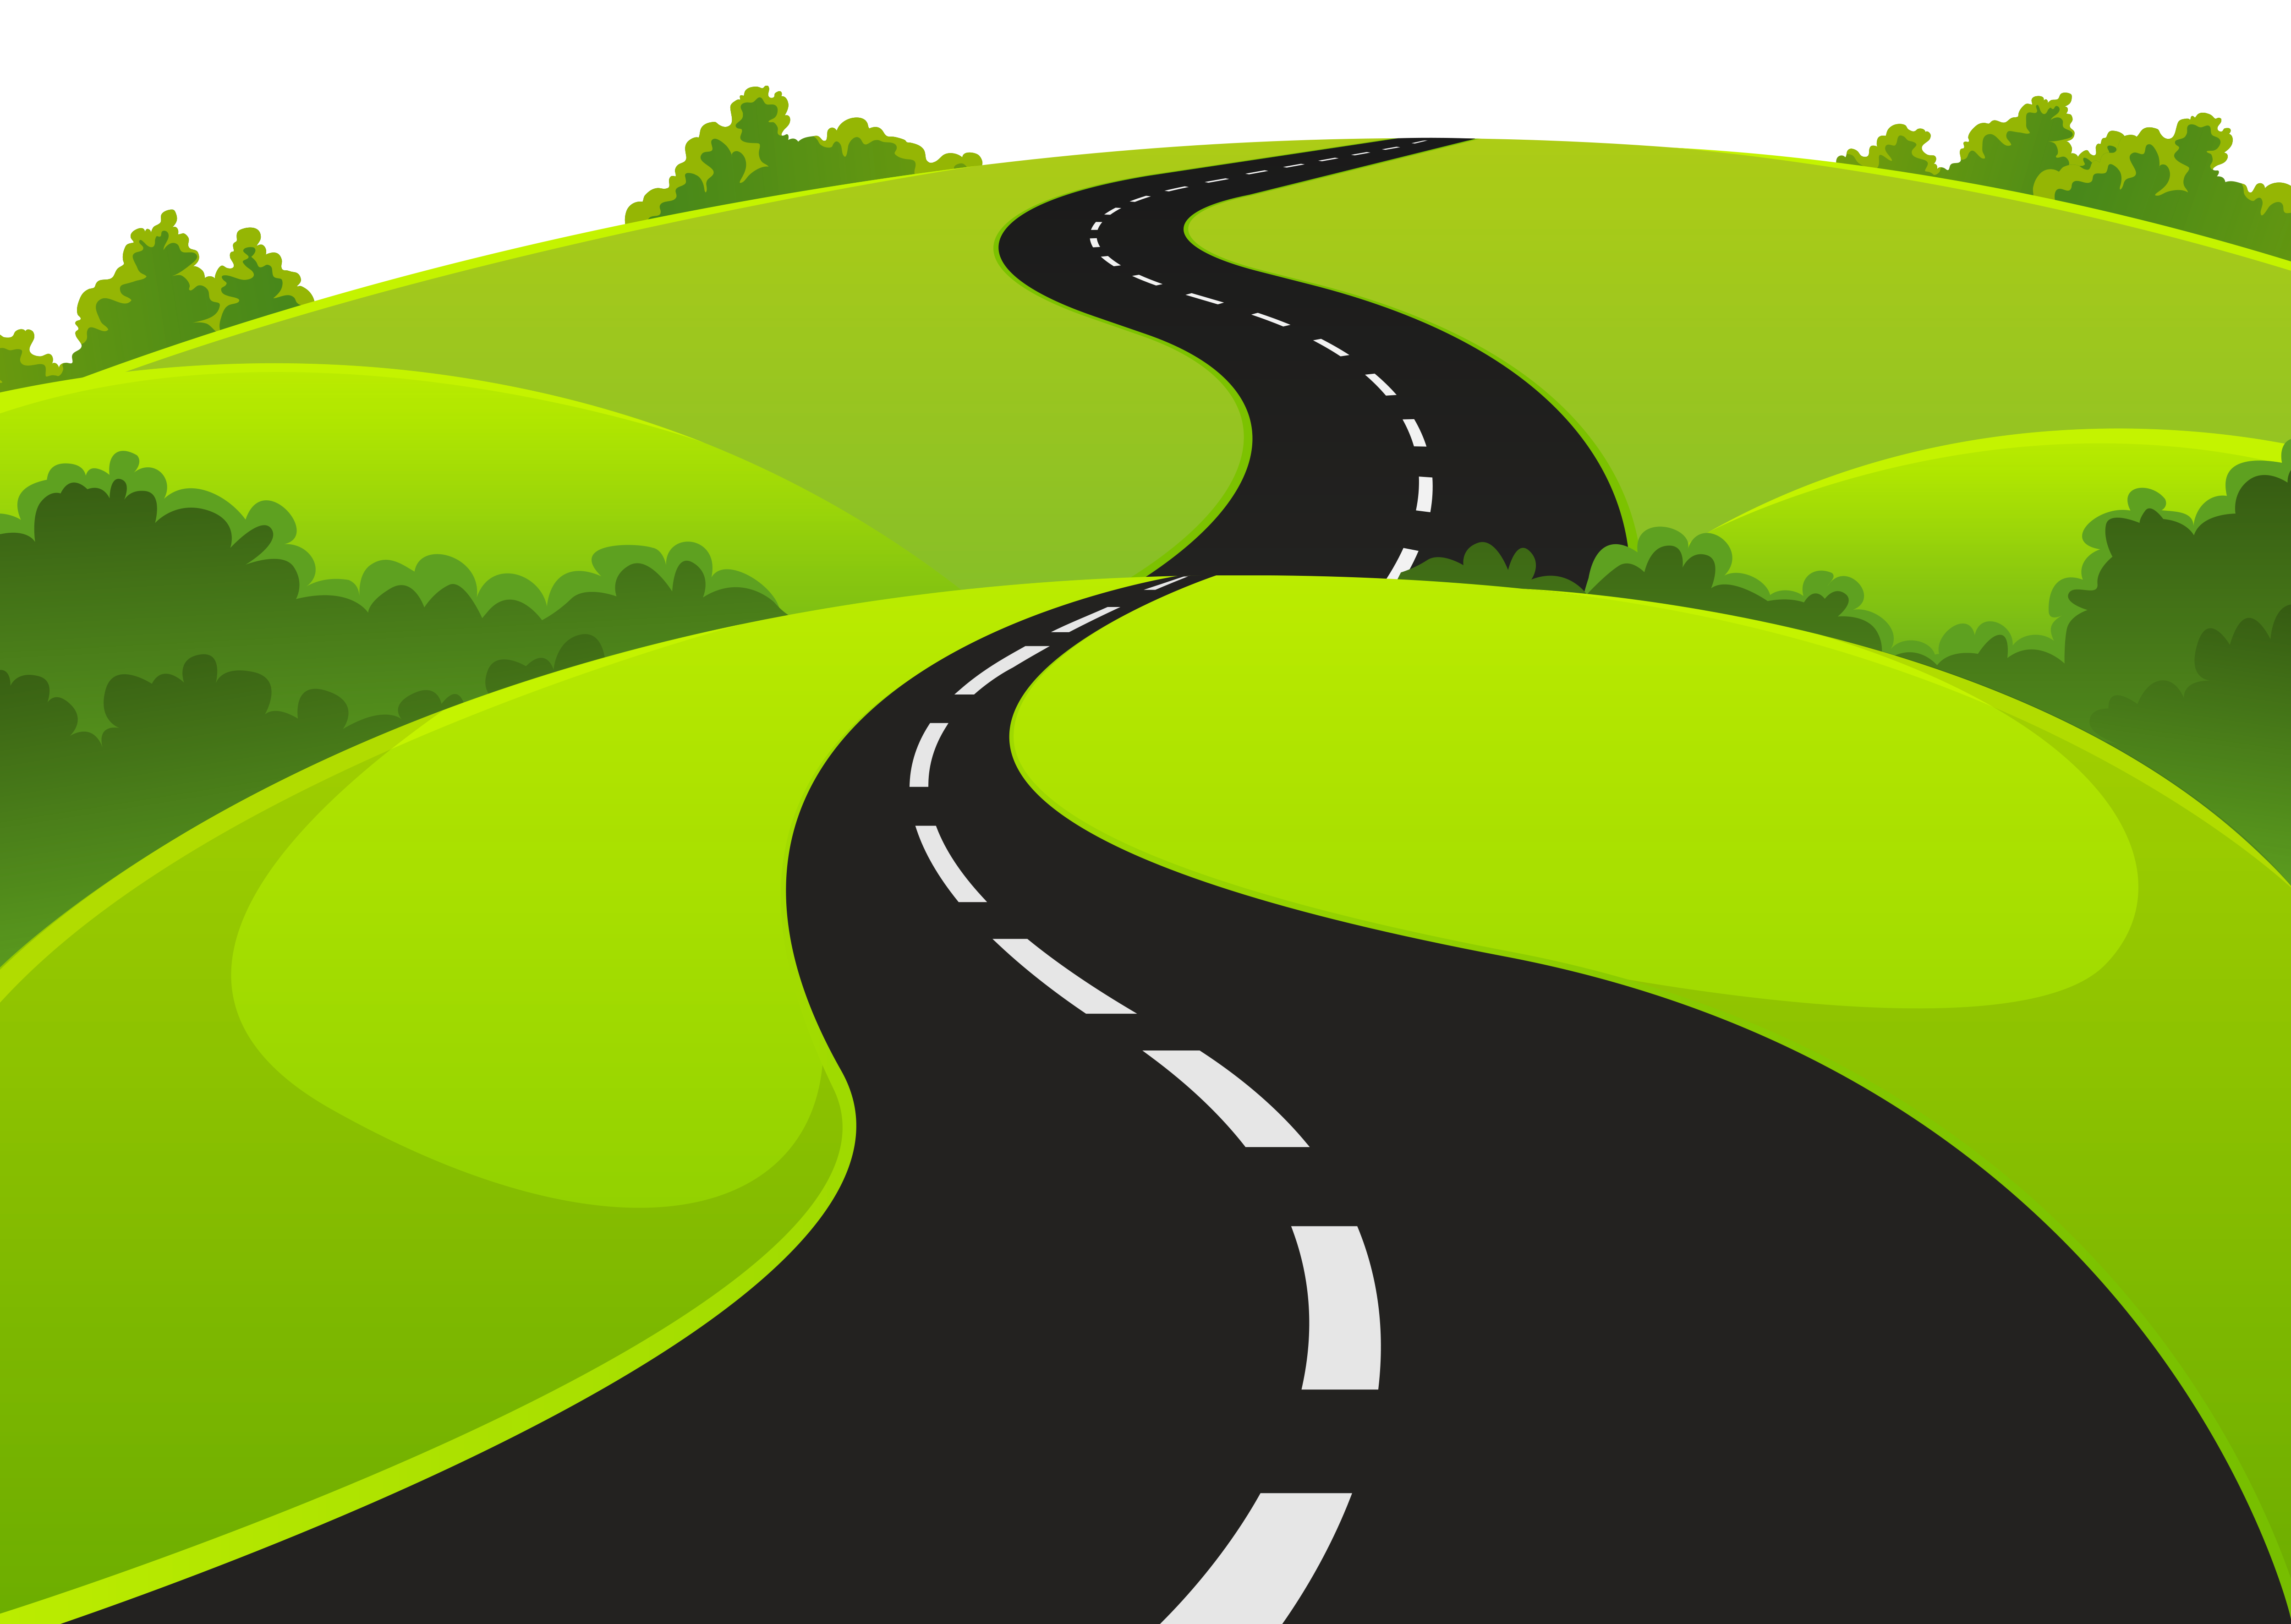 aaaa4ecba68600ae1f090f8d4ba7ef55_clipart-winding-road-road-clipart-images_5000-3545.png  (